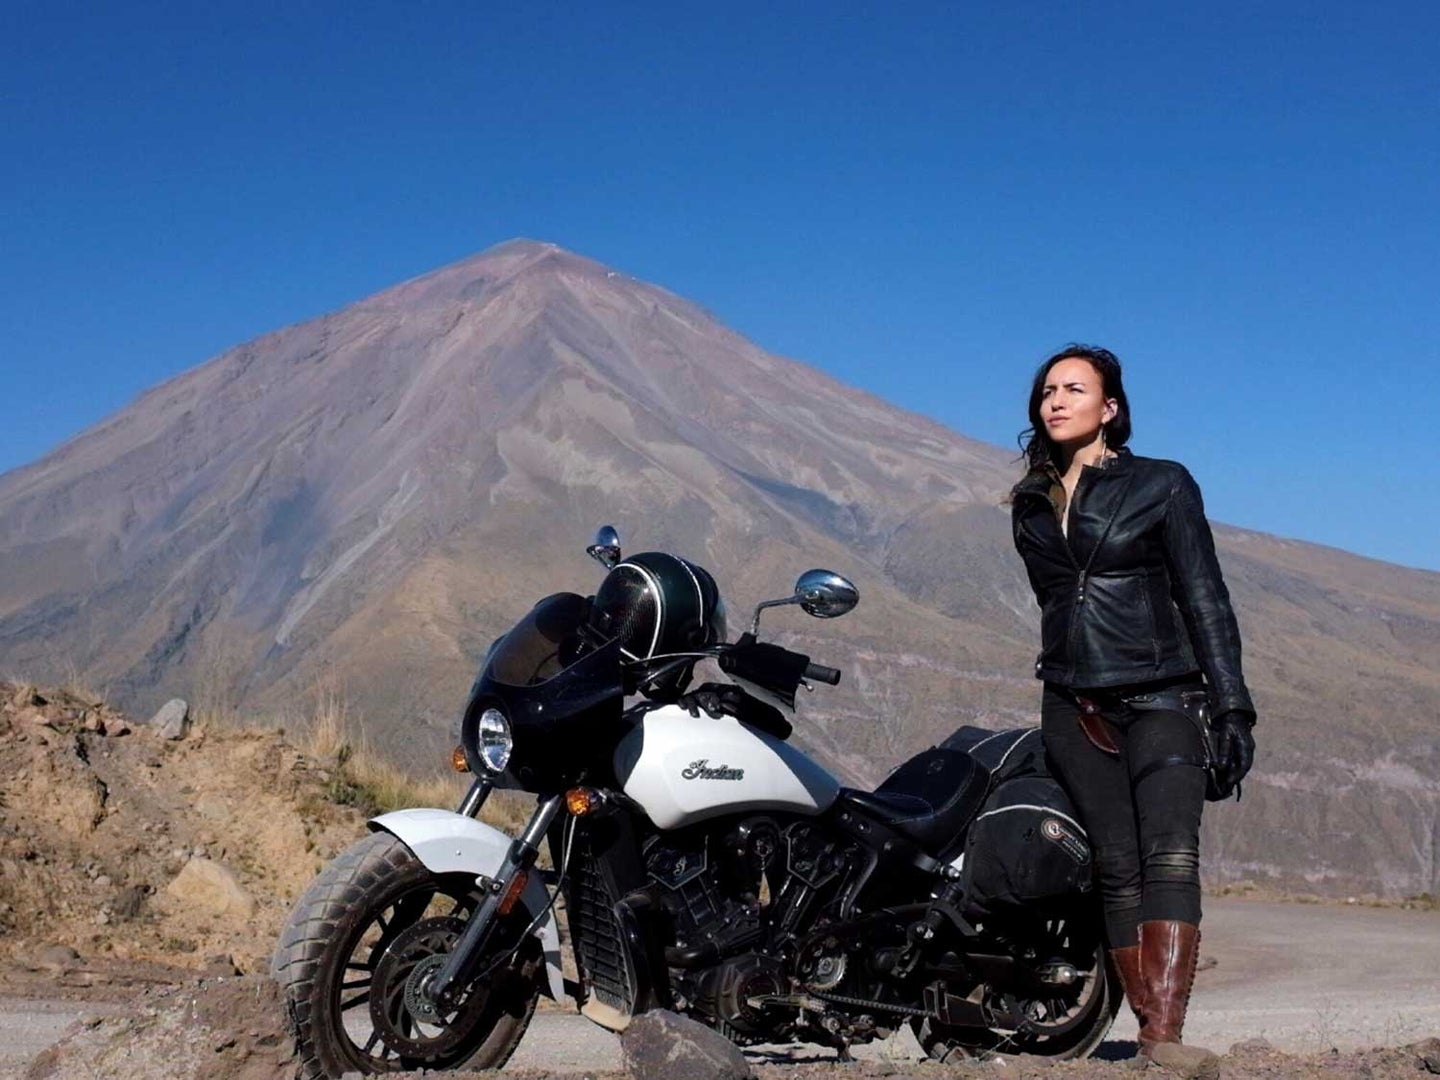 Armored Roland Sands Design gear (Mia Jacket, Julian Pant, Bonnie Gloves), leather boots I can run in if I need to, fixed blade clearly visible, wind in my hair, and the beating drum of nature in my heart.